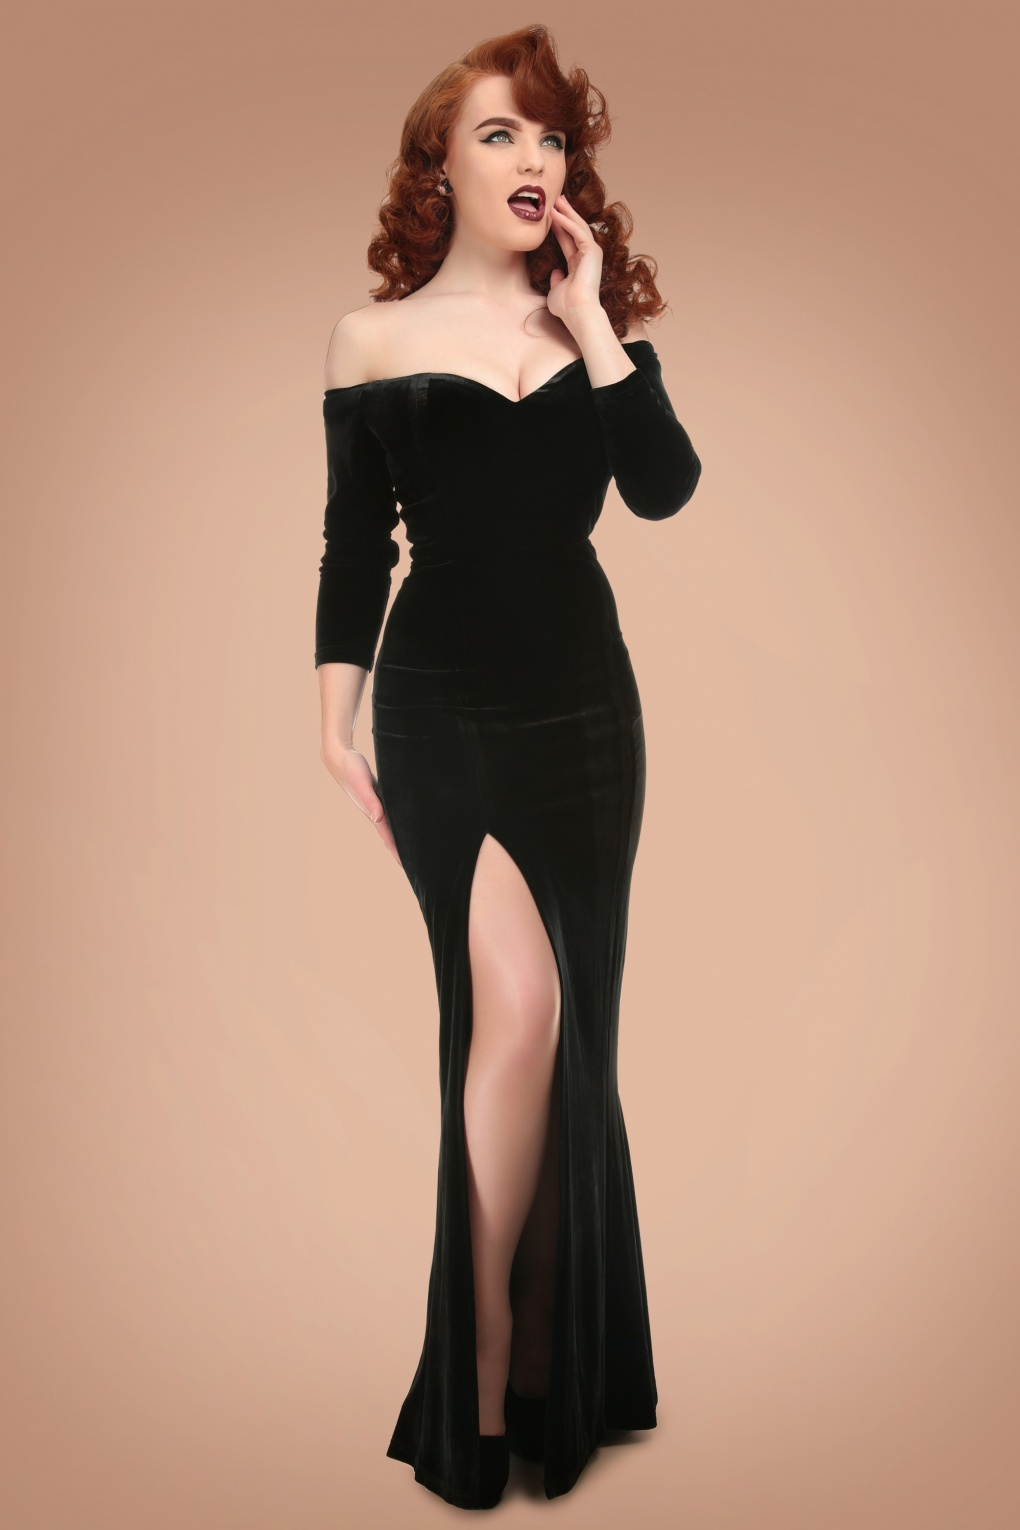 1950s Prom Dresses & Party Dresses 50s Anjelica Velvet Maxi Dress in Black £64.23 AT vintagedancer.com